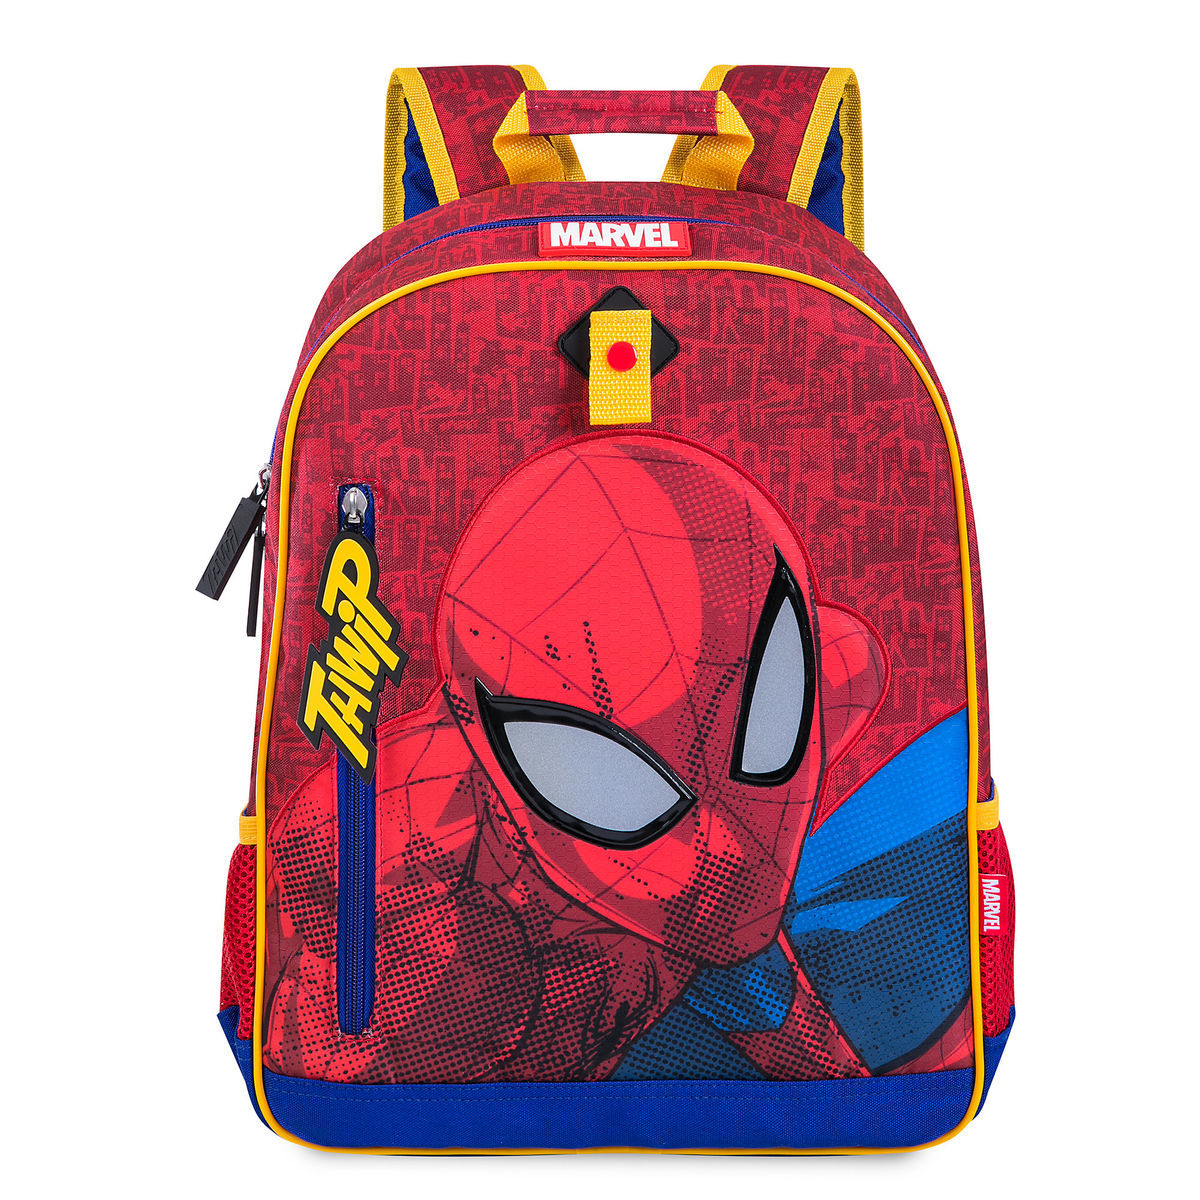 Product Image of Spider-Man Thwip Backpack - Personalizable   1 057ad10cc5bd6